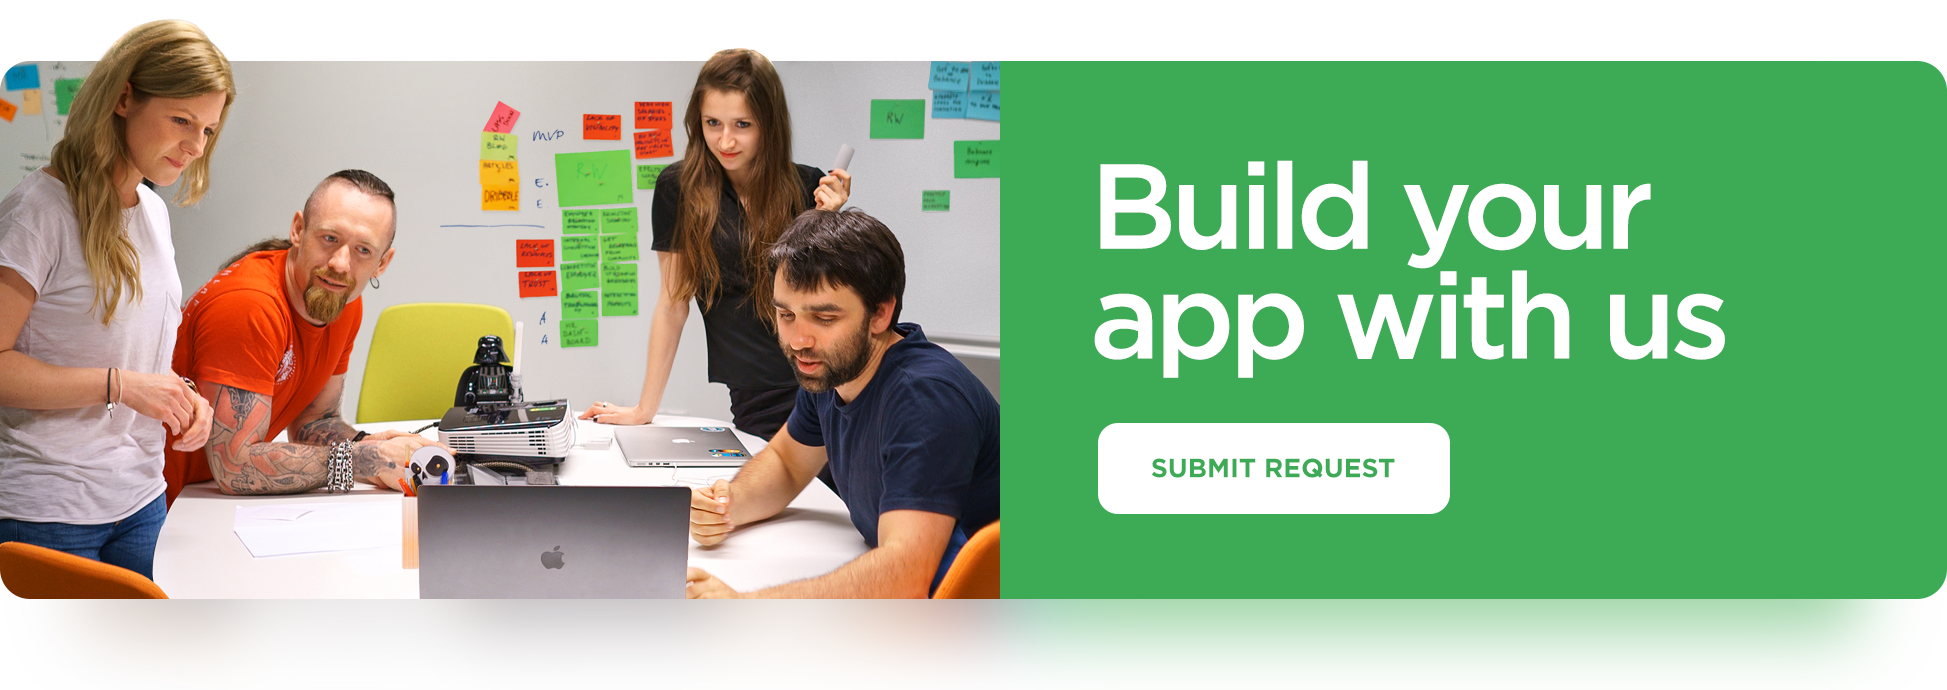 Build Your App With Us